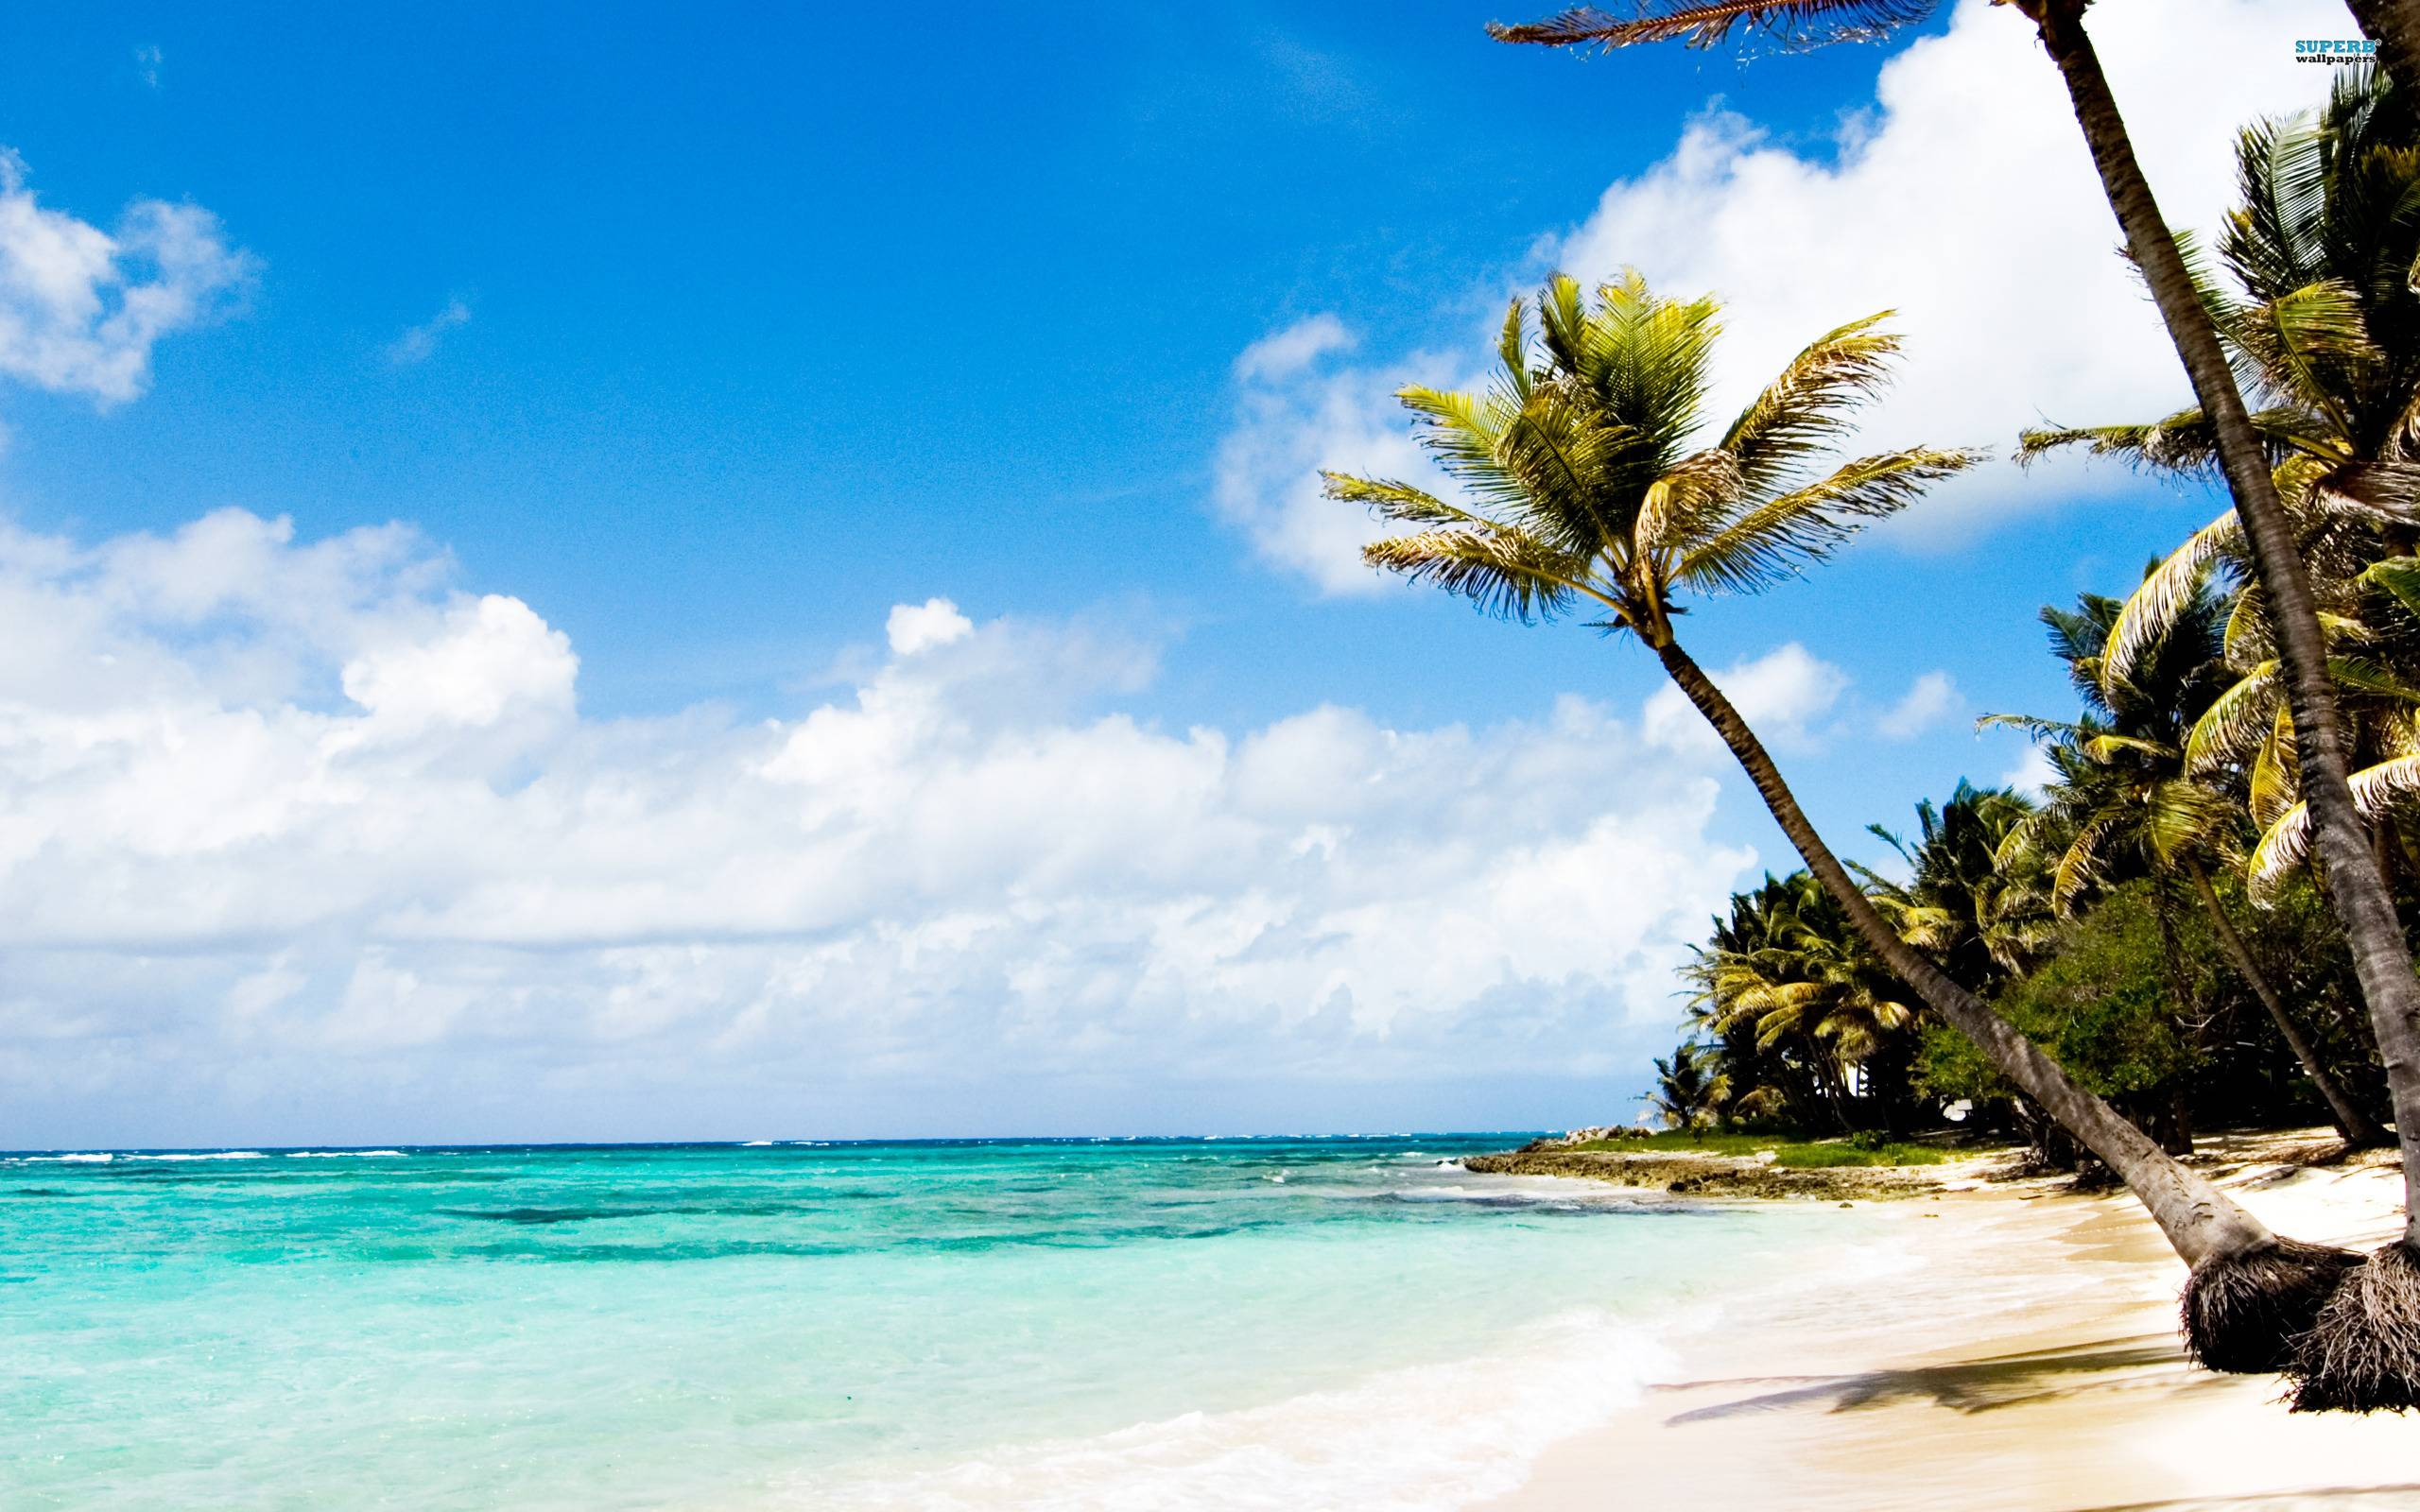 Caribbean Islands Wallpapers 2560x1600